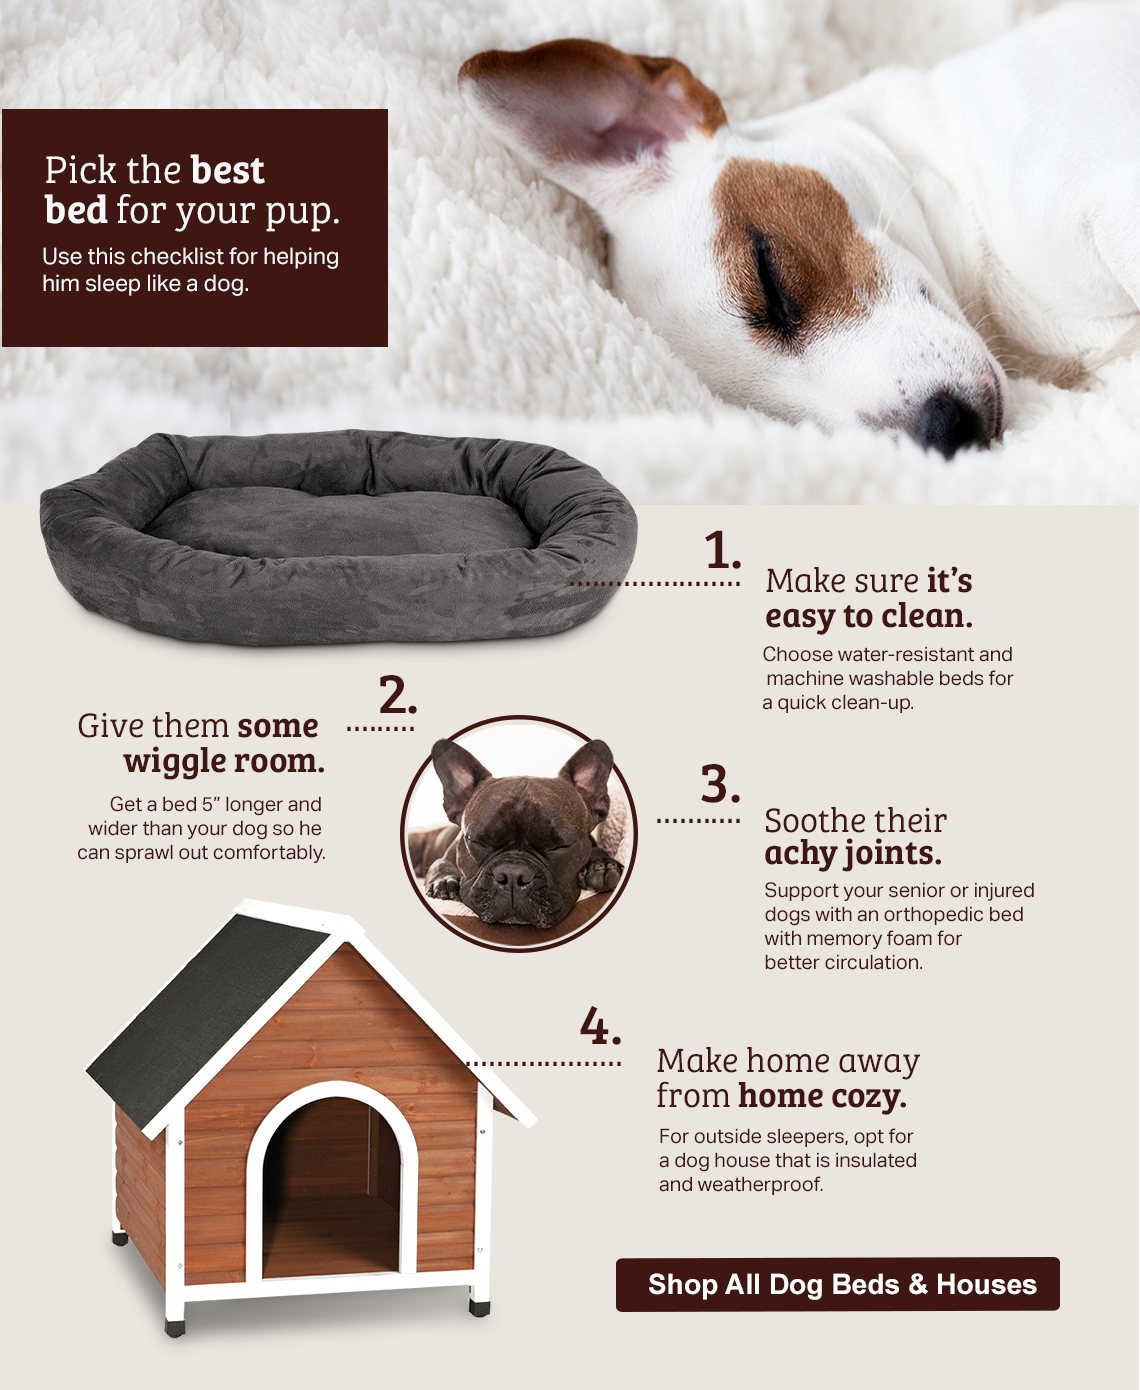 Shop Dog Beds & Houses